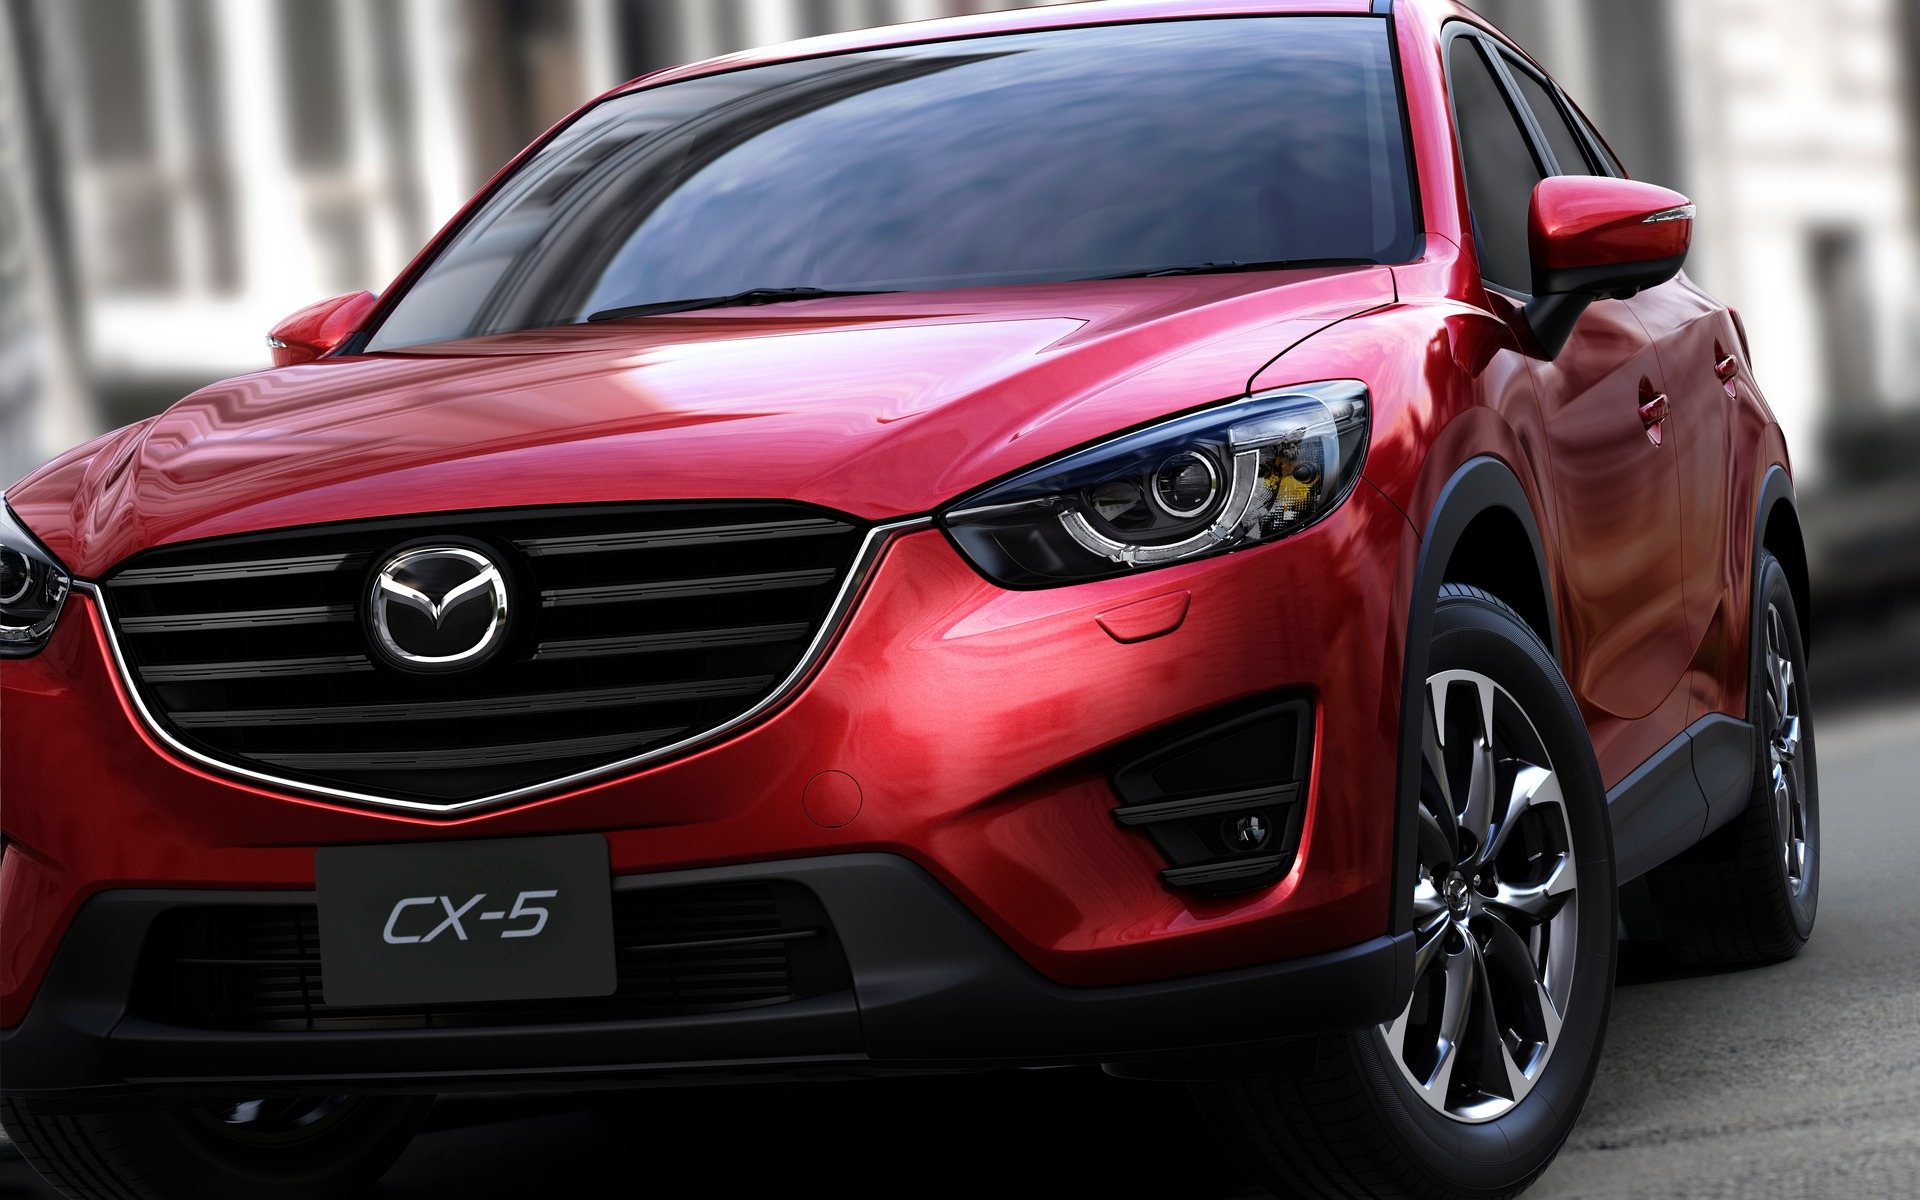 2016 Mazda CX5  Picture Gallery, photo 9/10  The Car Guide